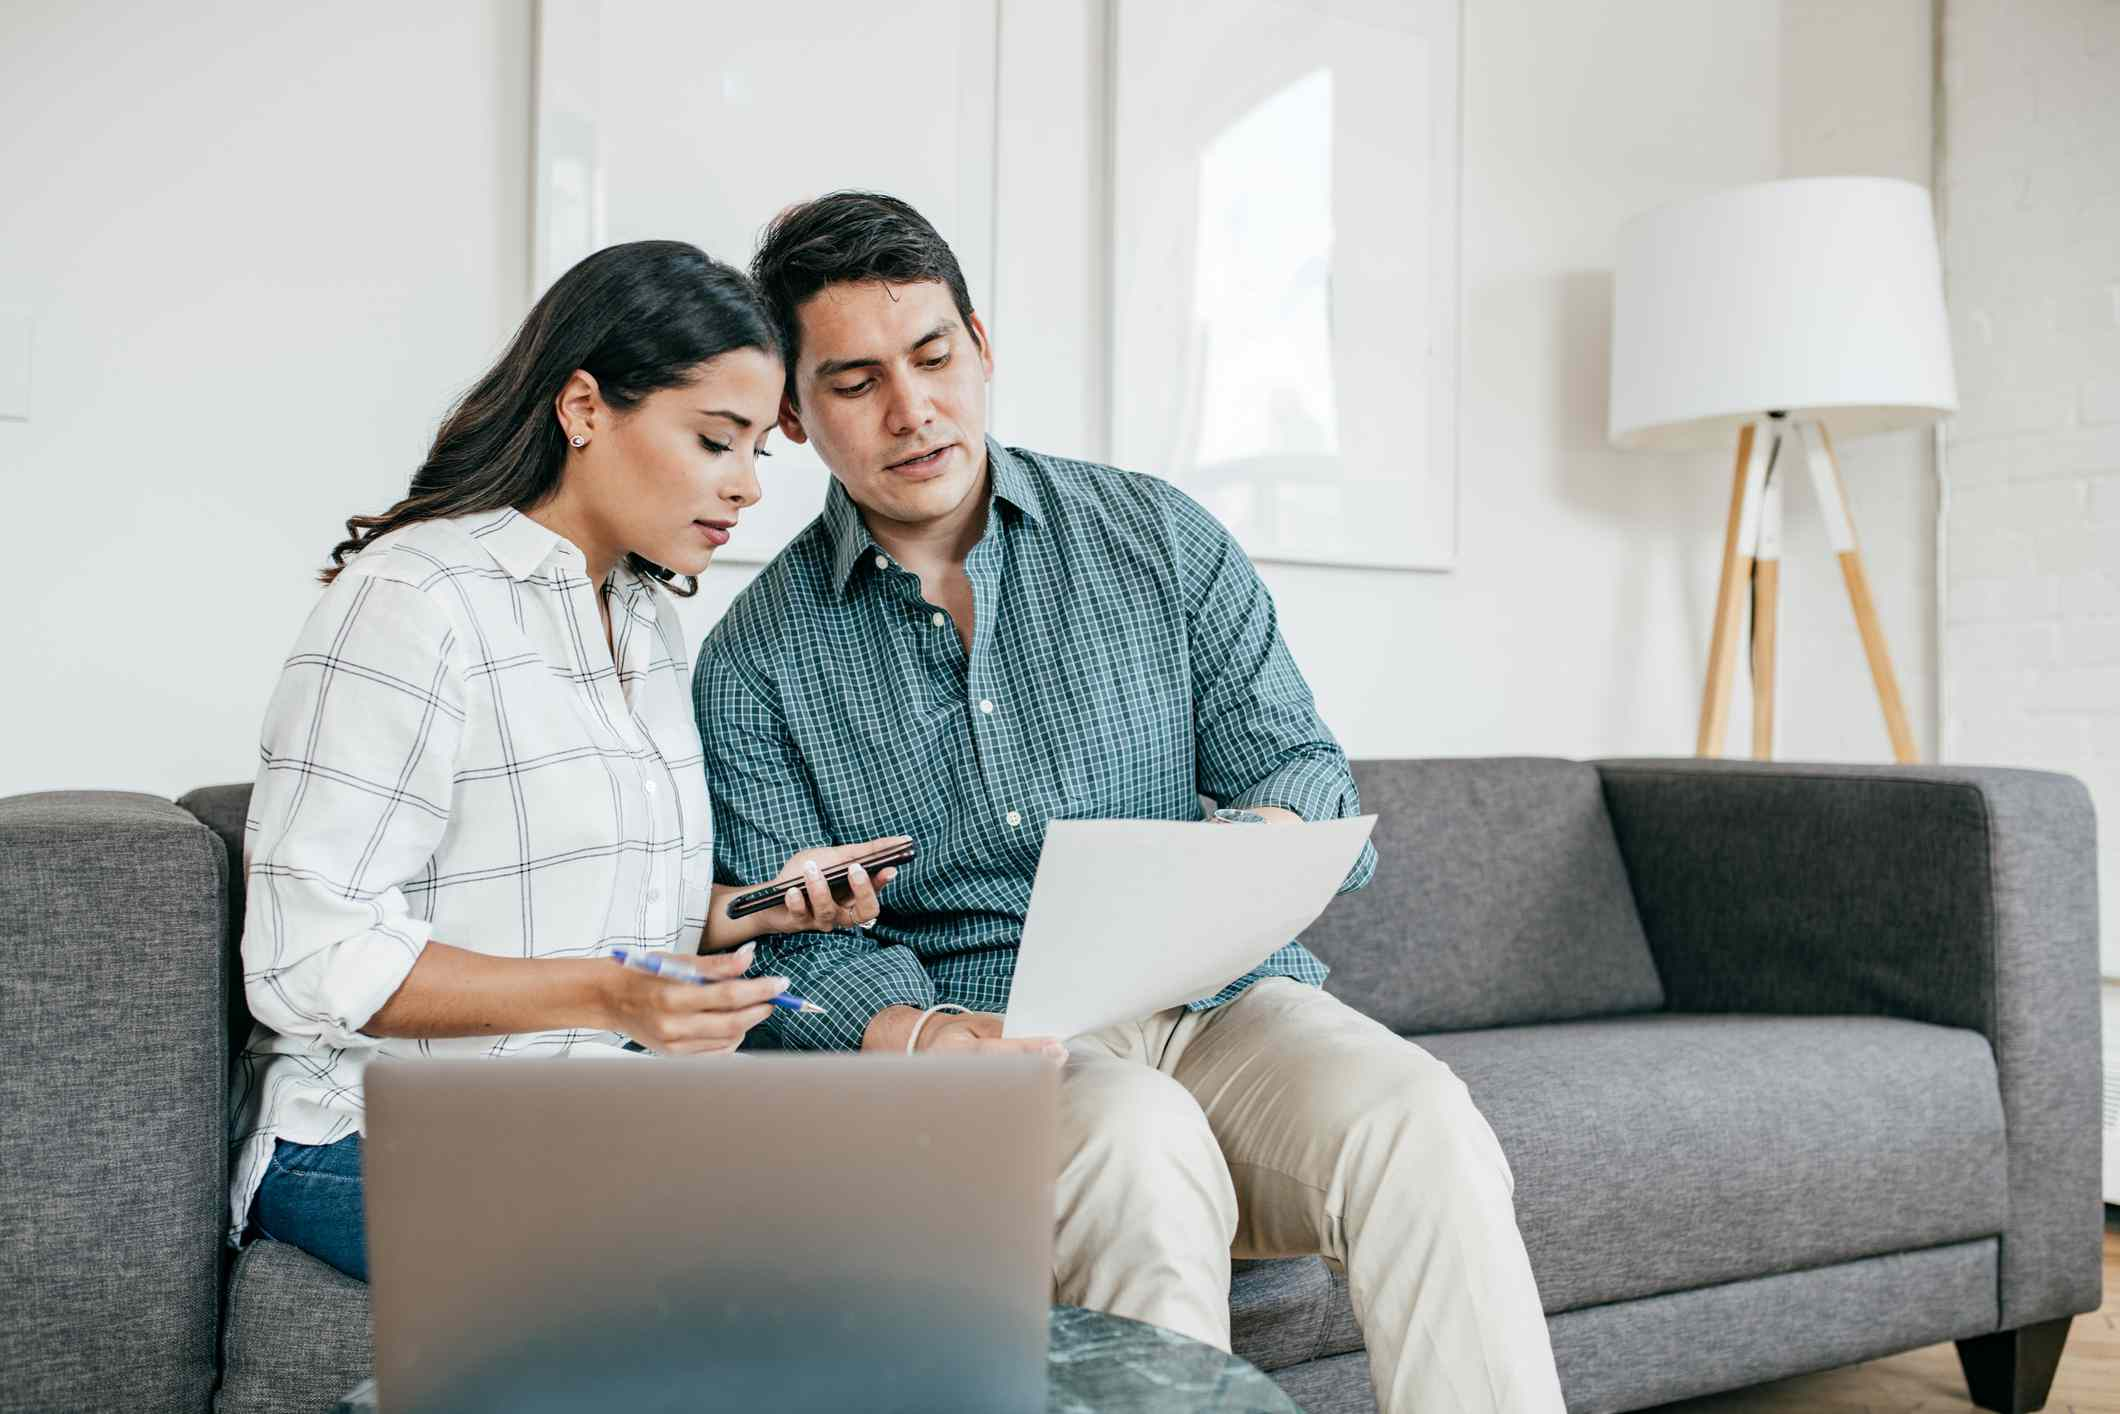 Couple on couch reviewing insurance documents